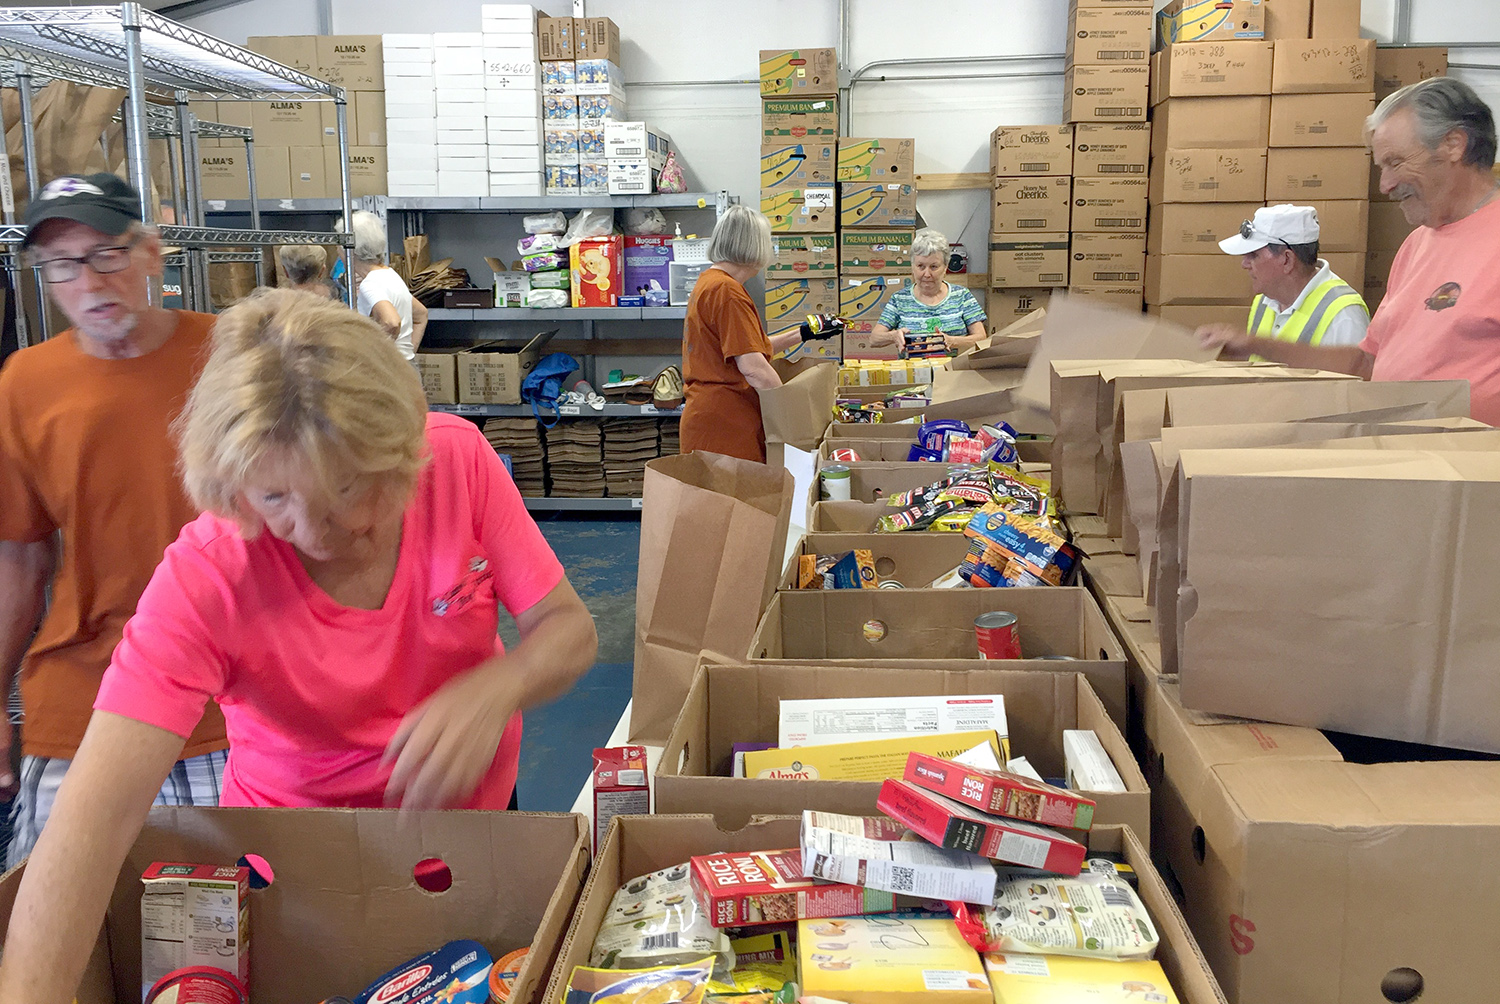 Community Foundation of Tampa Bay helps local food bank The